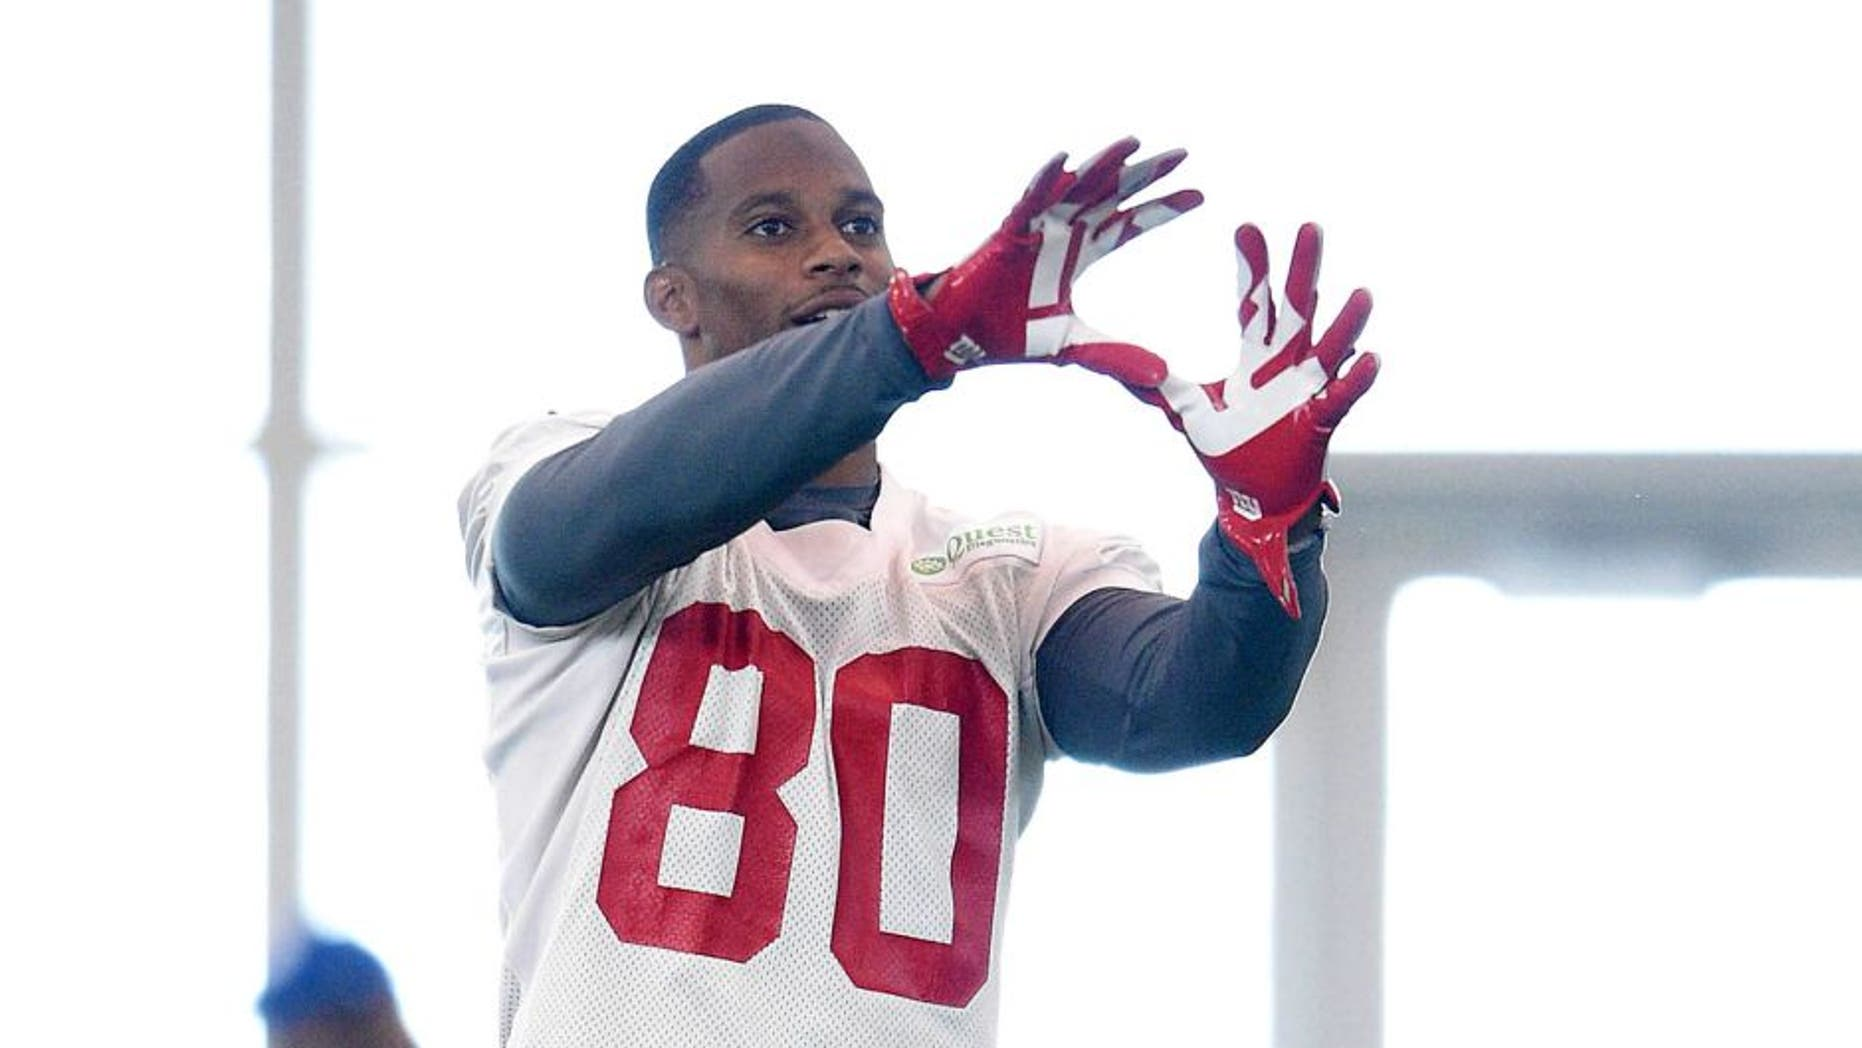 Jun 16, 2015; East Rutherford, NJ, USA; New York Giants wide receiver Victor Cruz (80) catches a ball during minicamp at Quest Diagnostics Training Center. Mandatory Credit: Steven Ryan-USA TODAY Sports